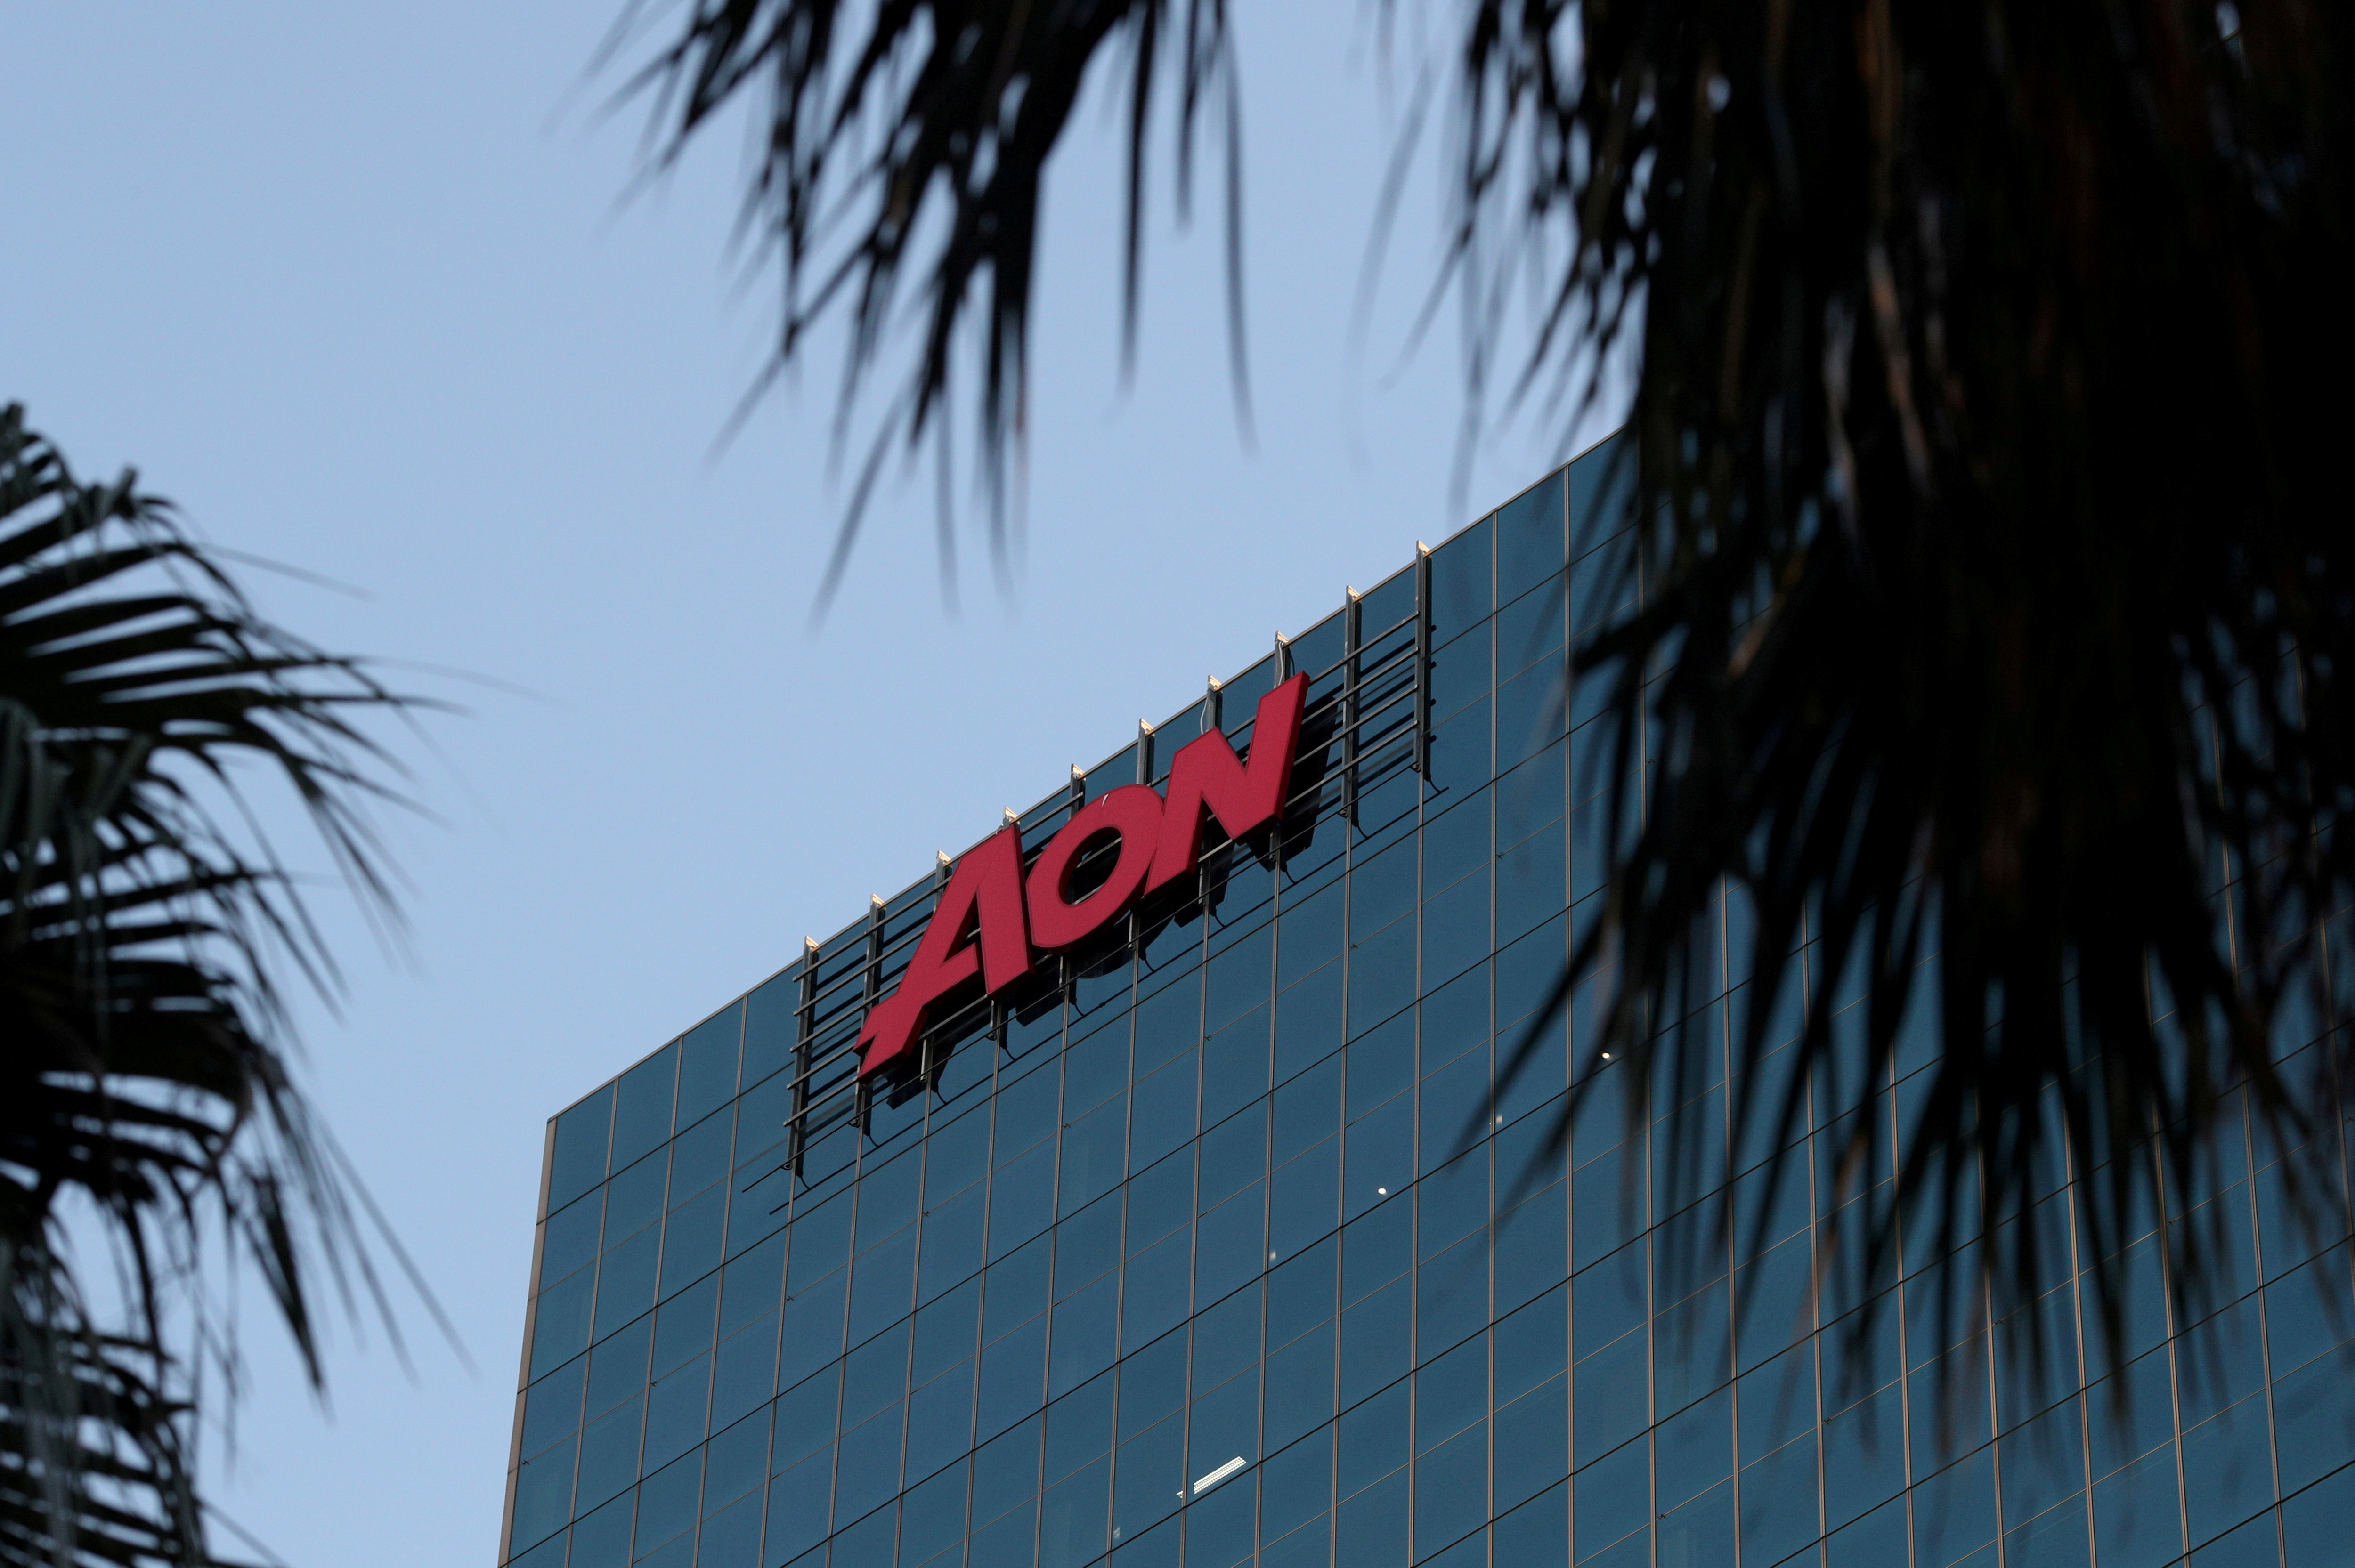 FILE PHOTO: An office building with the Aon logo is seen amid the easing of the coronavirus disease (COVID-19) restrictions in the Central Business District of Sydney, Australia, June 3, 2020. REUTERS/Loren Elliott